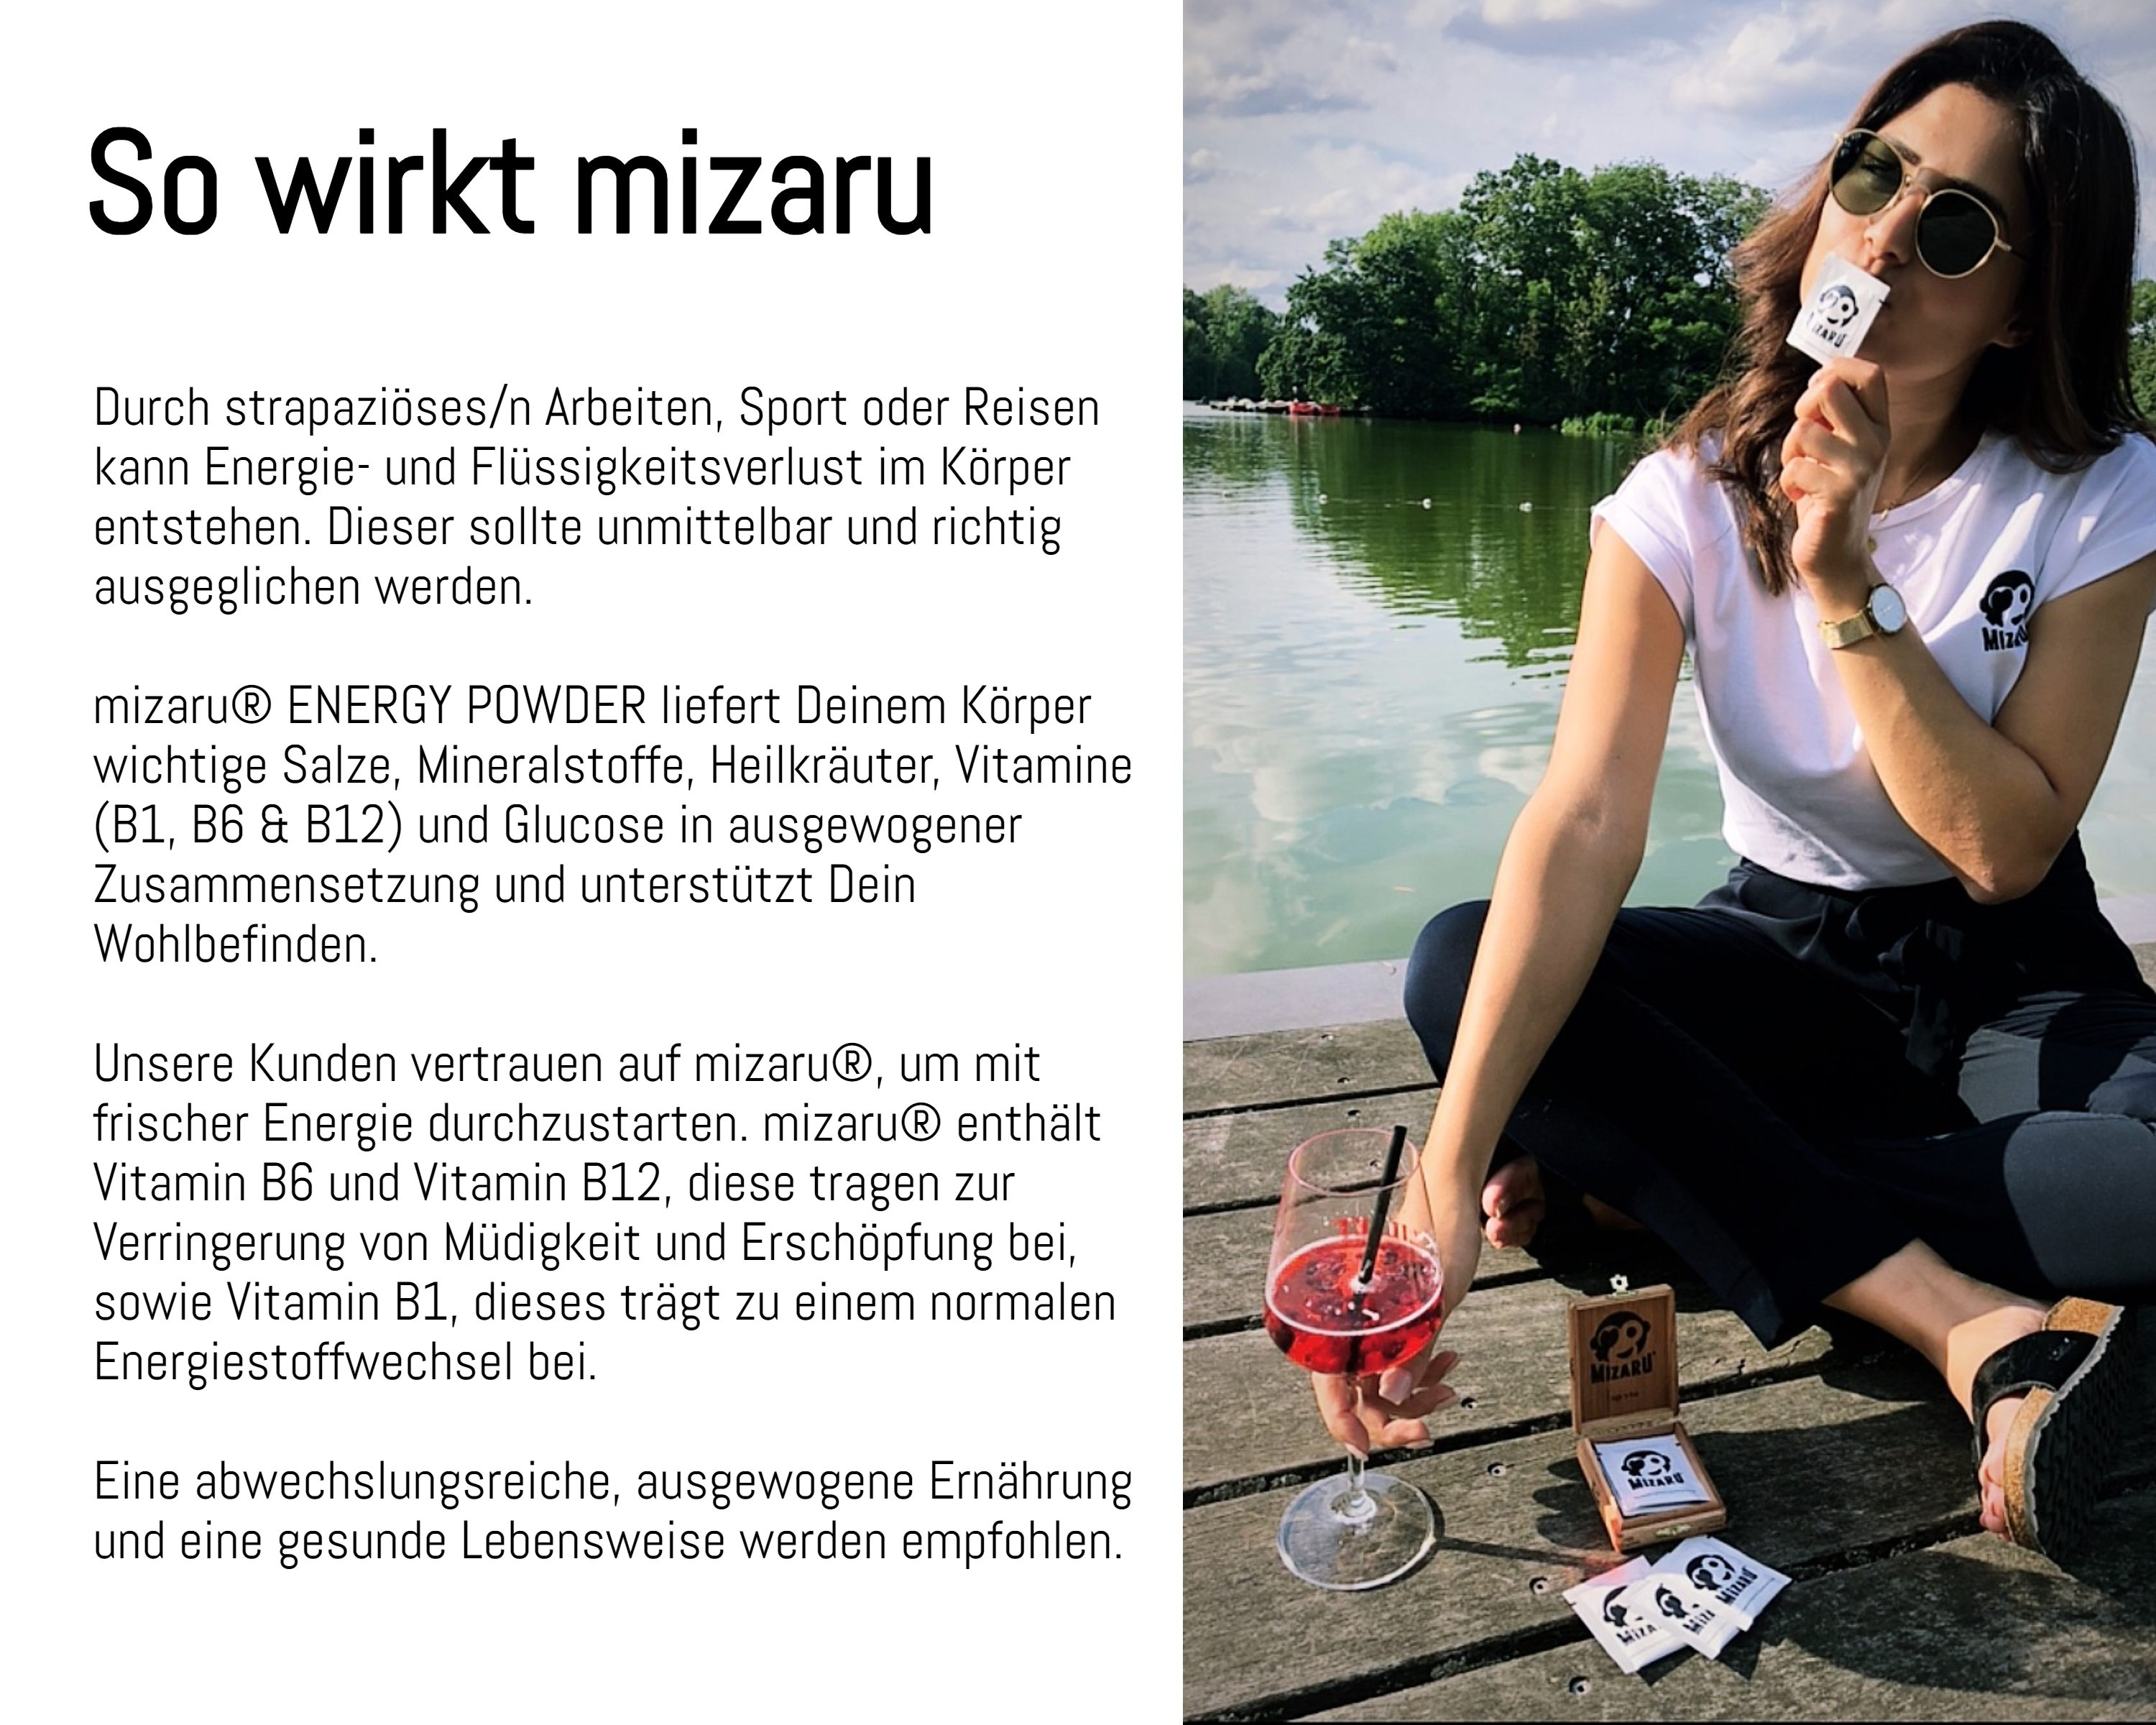 mizaru-ENERGY-POWDER-Wirkung-Vitamine